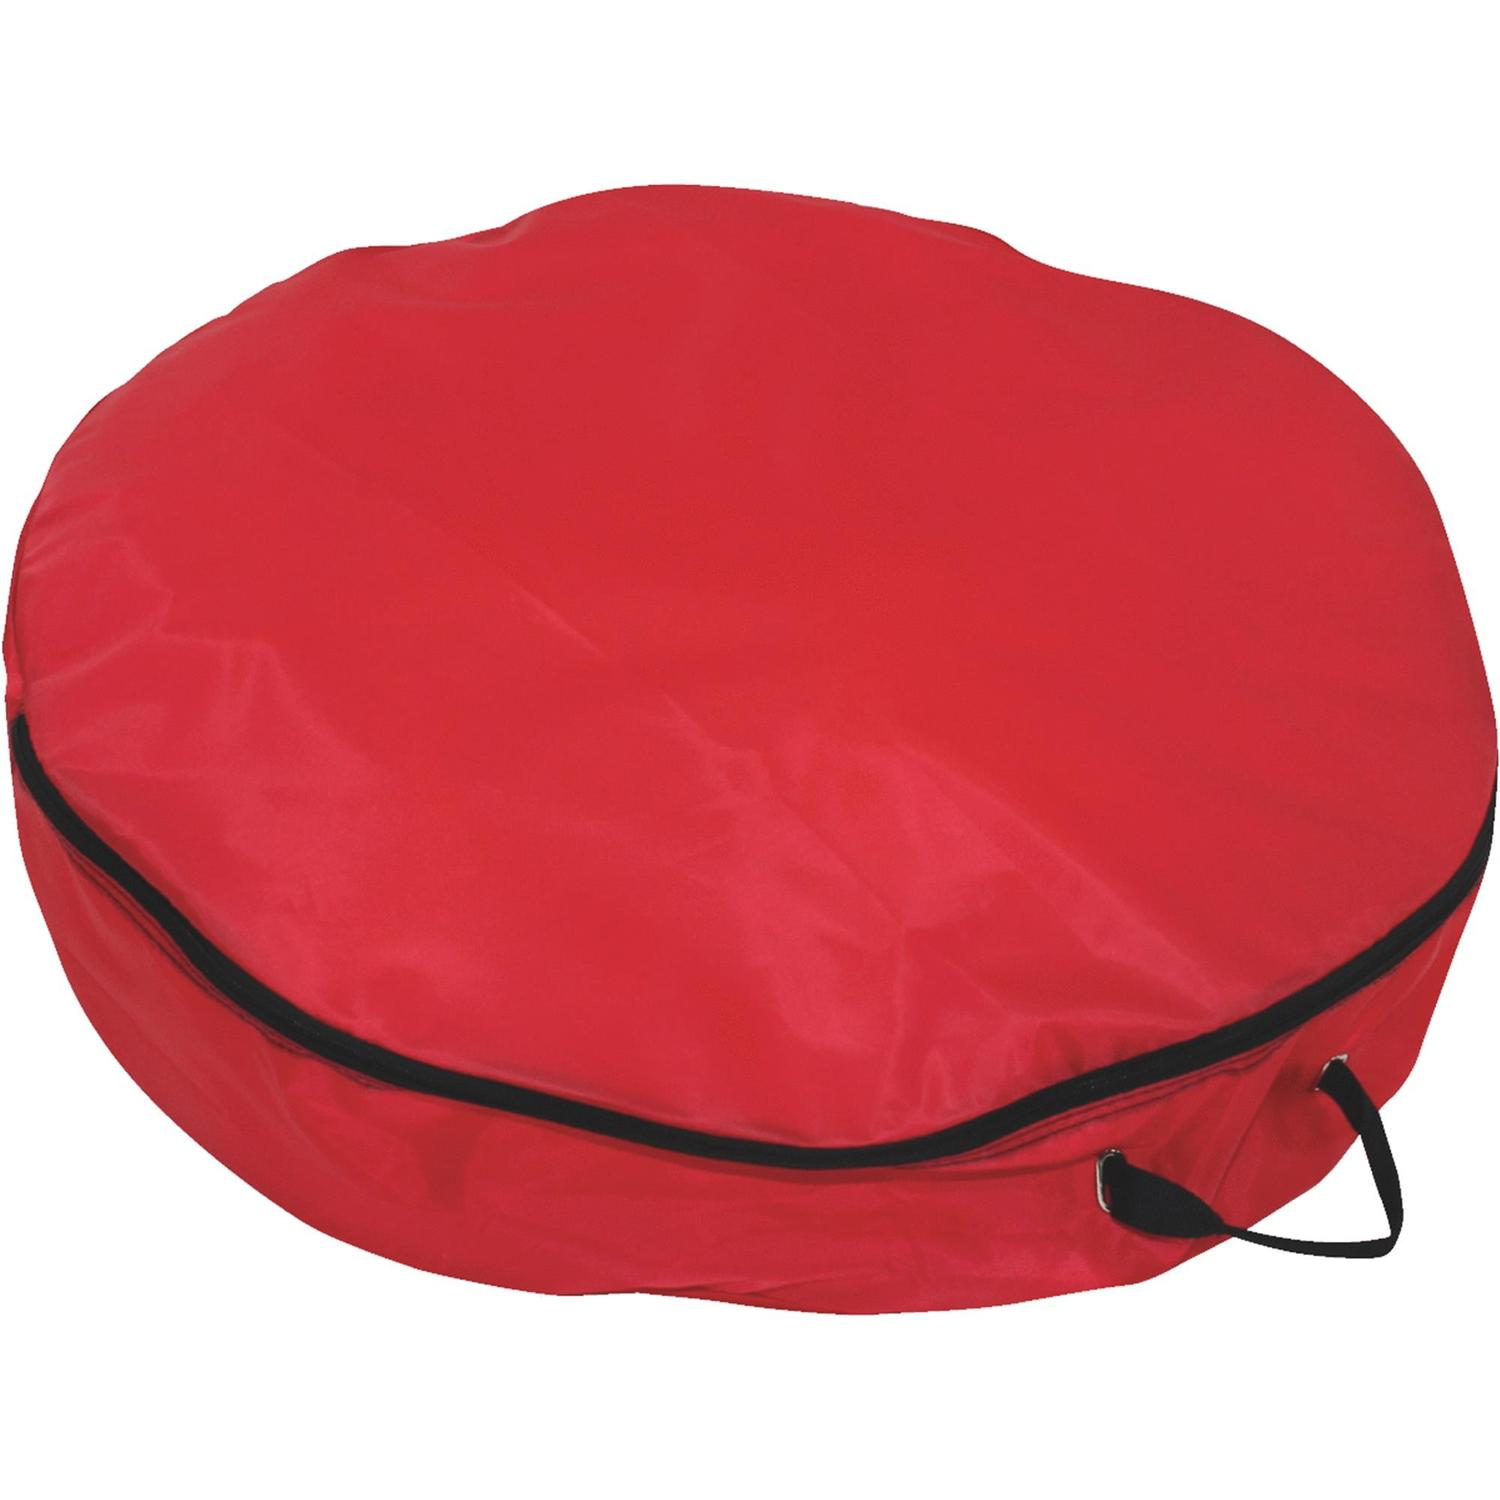 "24"" Lightweight Red Christmas Wreath Storage Bag with Handles"